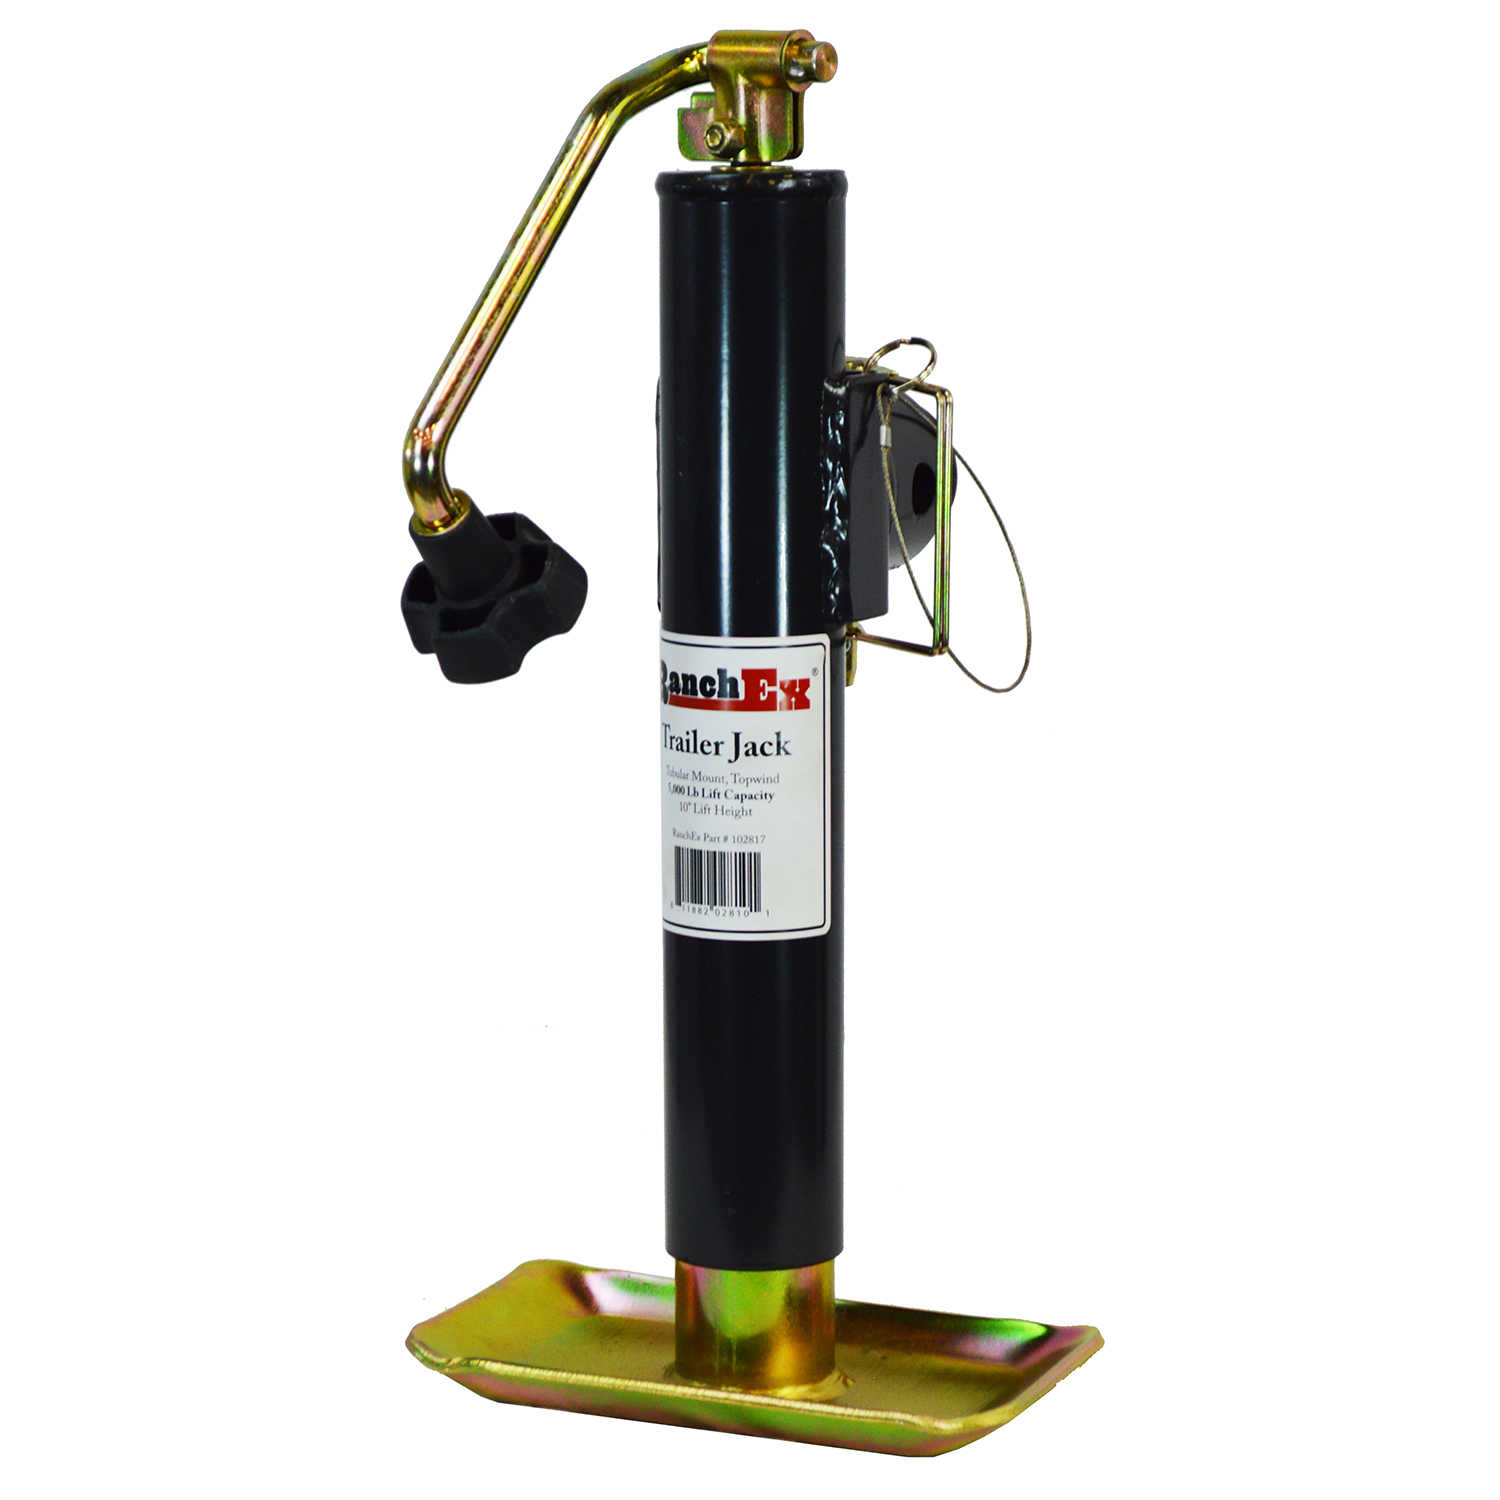 RanchEx Tubular Mount Top wind Trailer Jack, 5,000 lb. Lift Capacity, 10' Lift Height